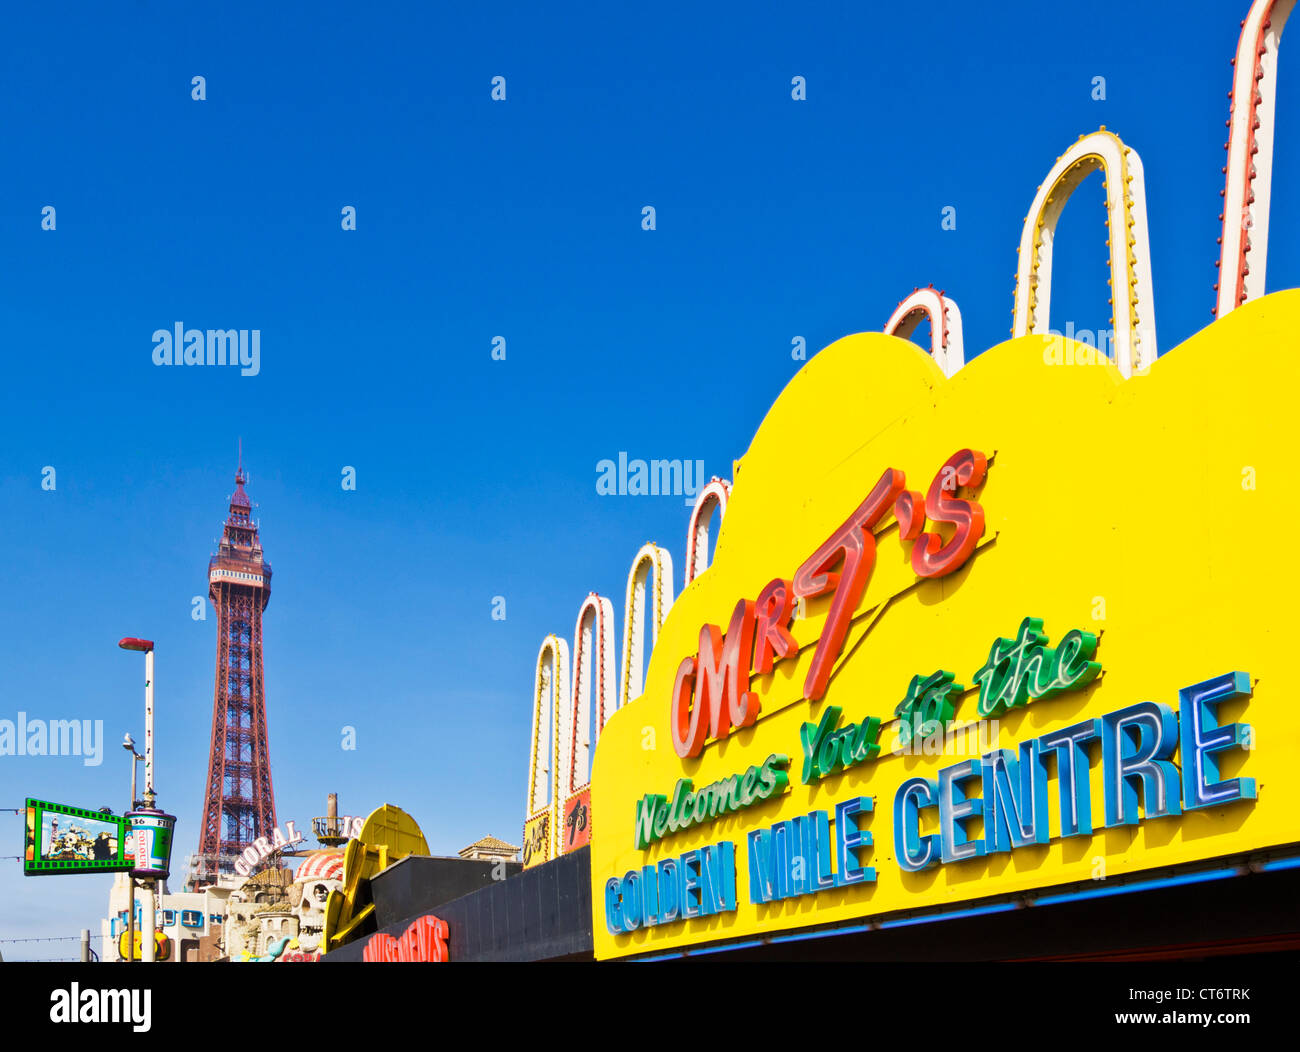 Blackpool tower and seafront amusements Mr t's Golden mile centre  along the Golden Mile on the seafront Blackpool - Stock Image